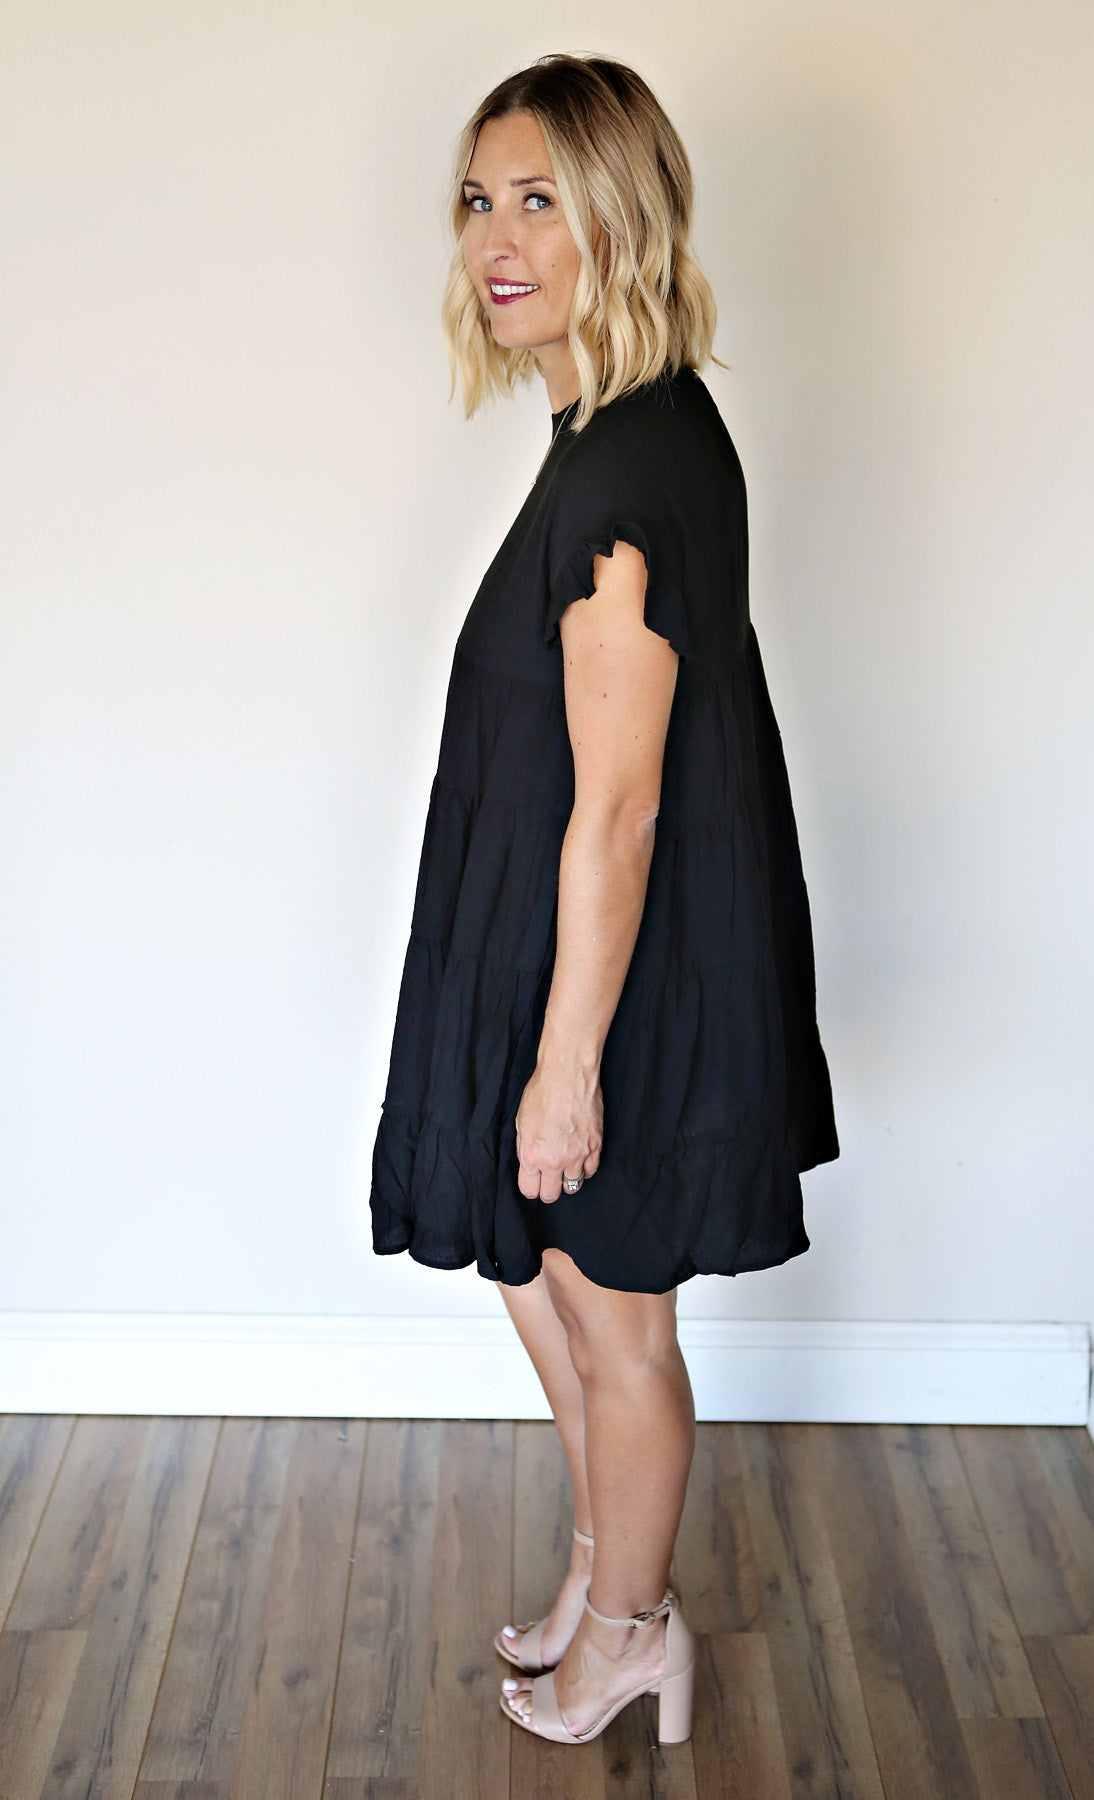 Dani Dress - Black - Gray Monroe